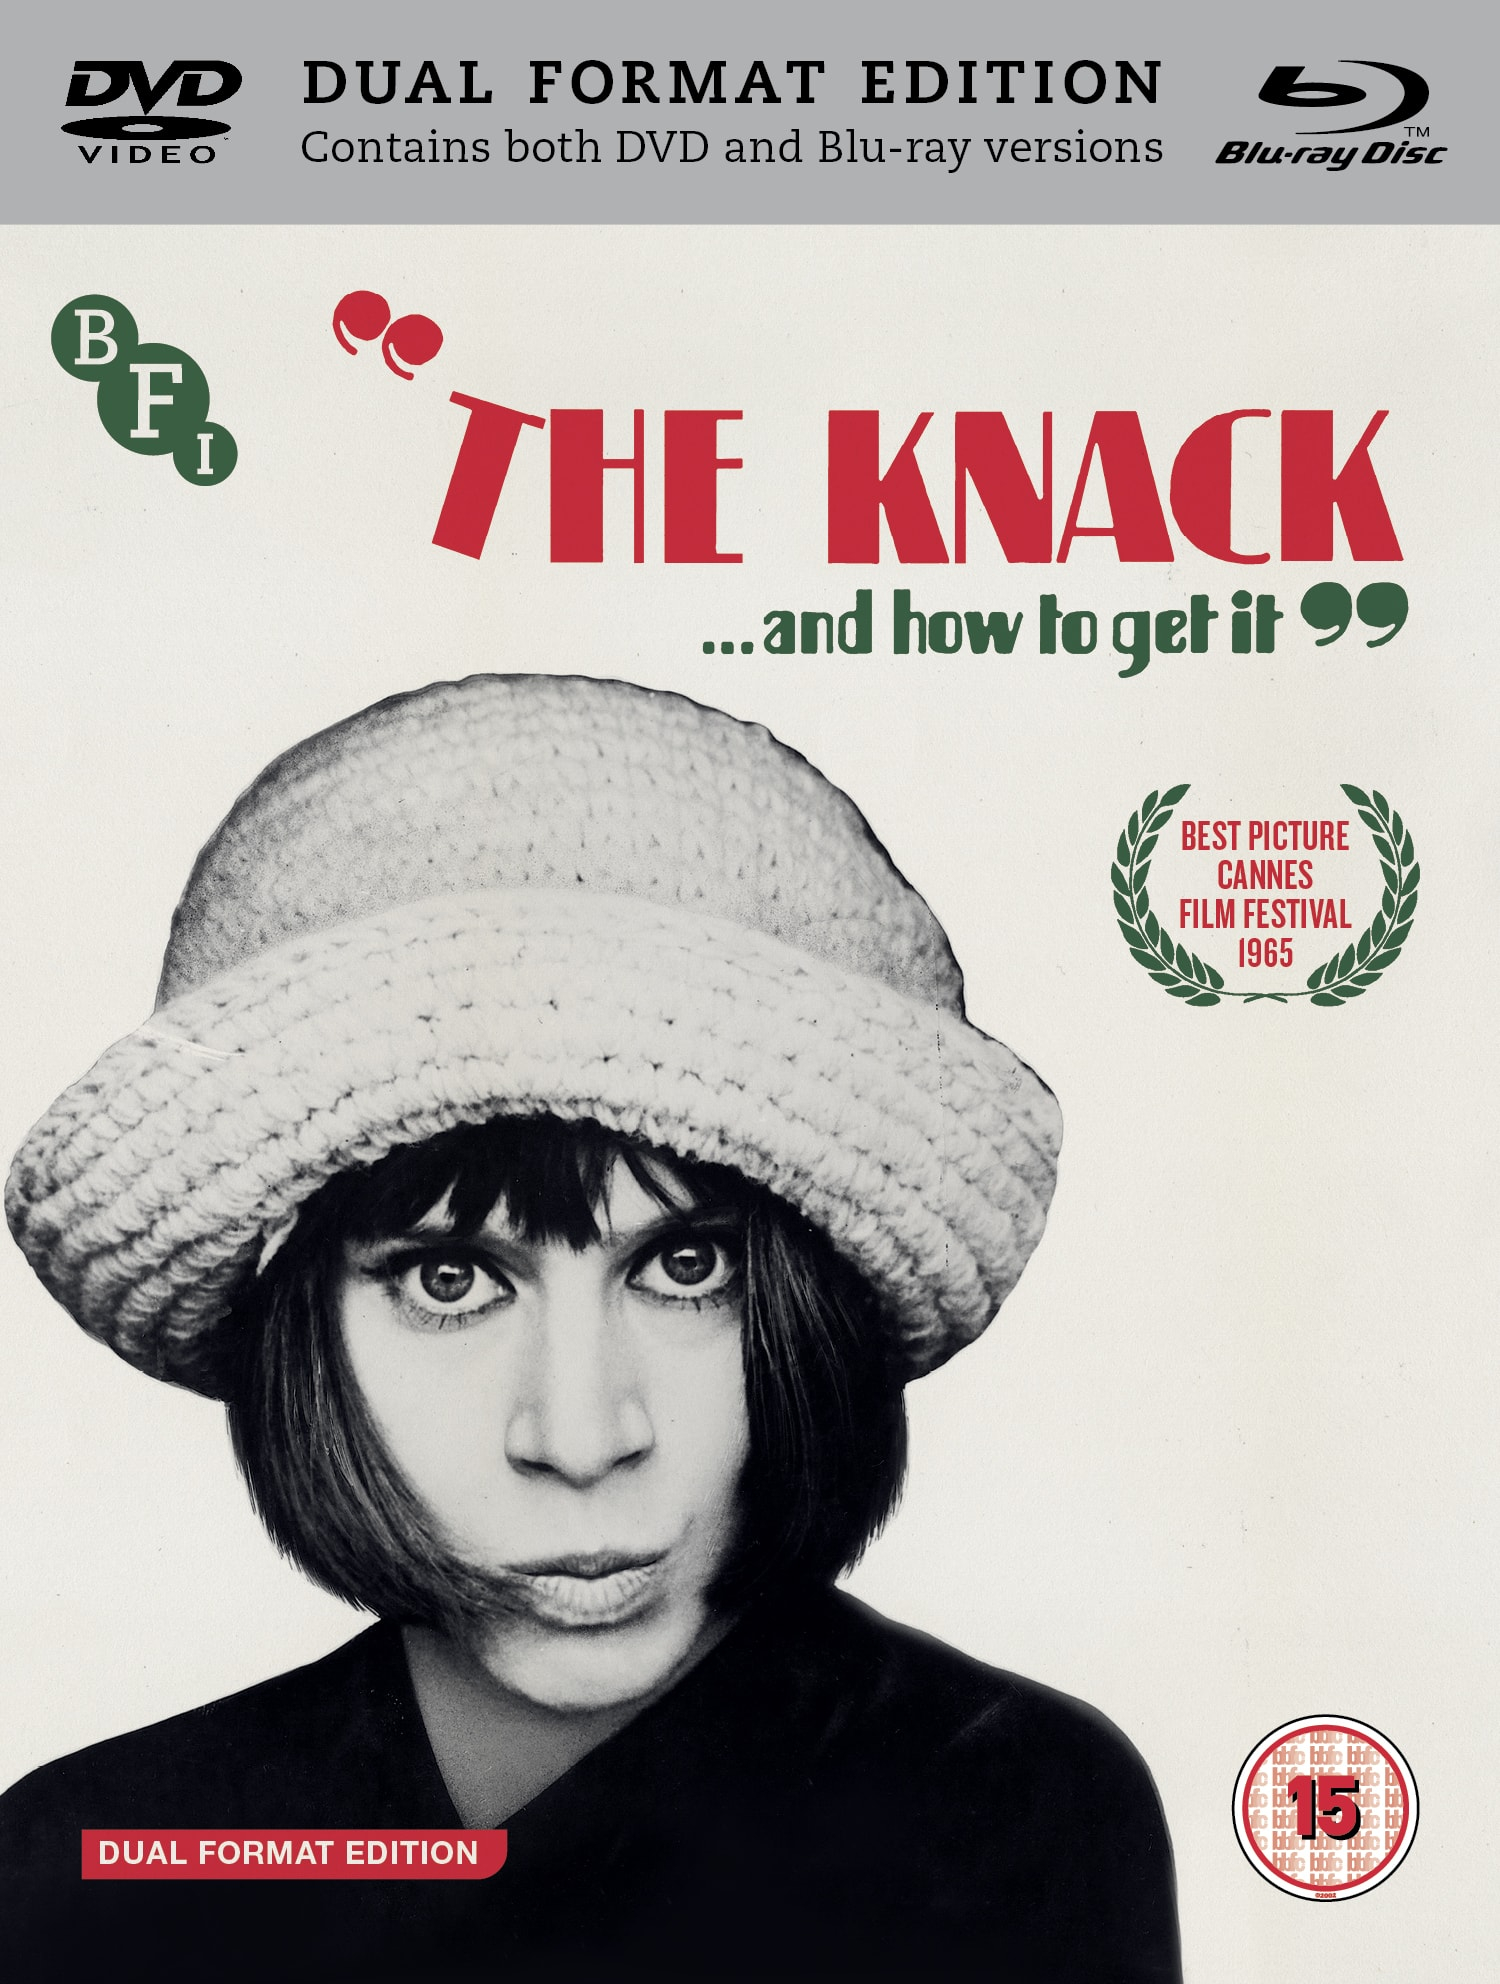 Buy The Knack...and how to get it (Dual Format Edition)